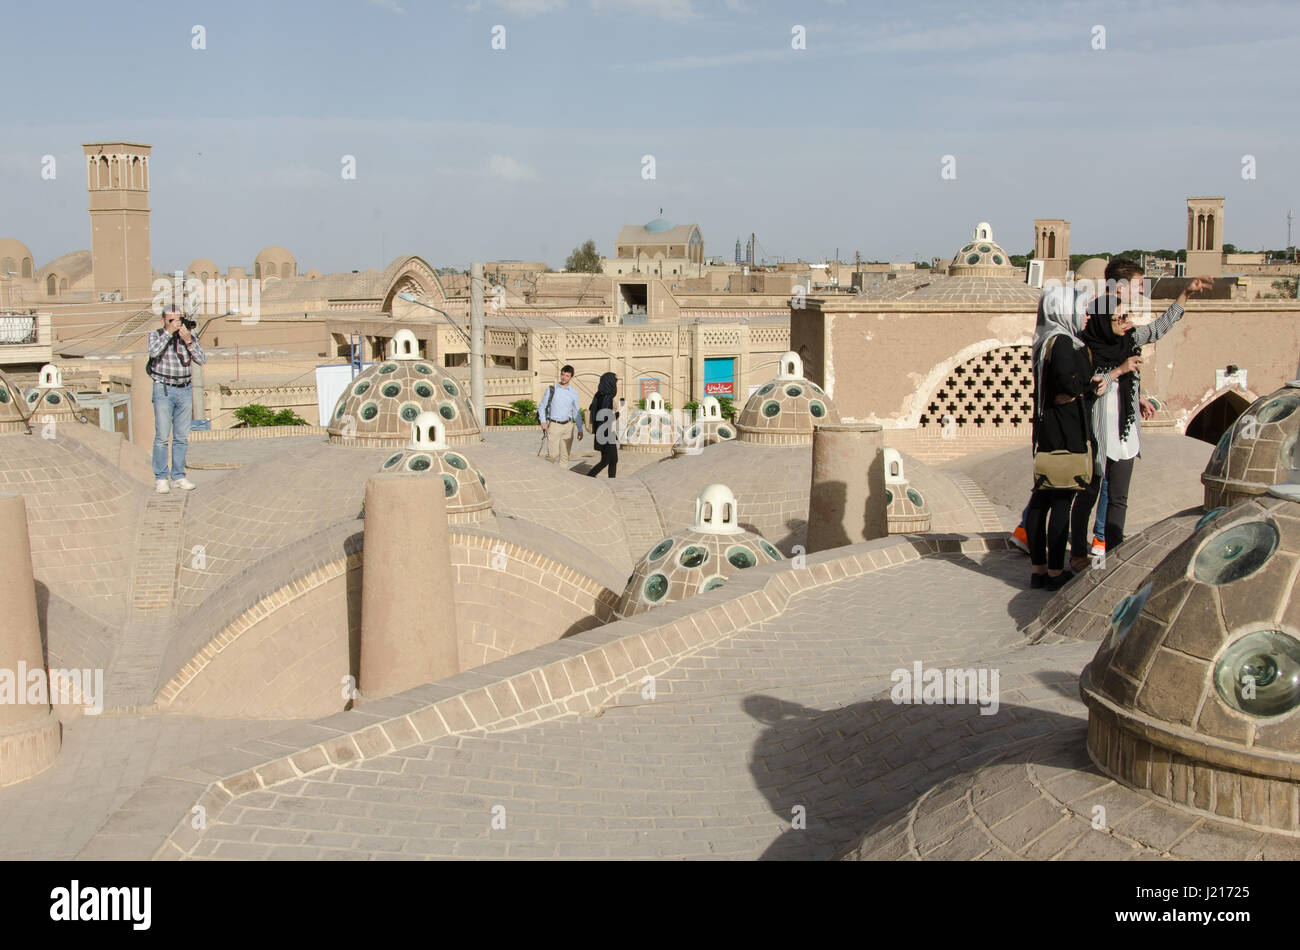 Tourists on rooftop of Sultan Amir Ahmad bathhouse in Kashan, Iran Roof domes contains convex glasses to provide - Stock Image